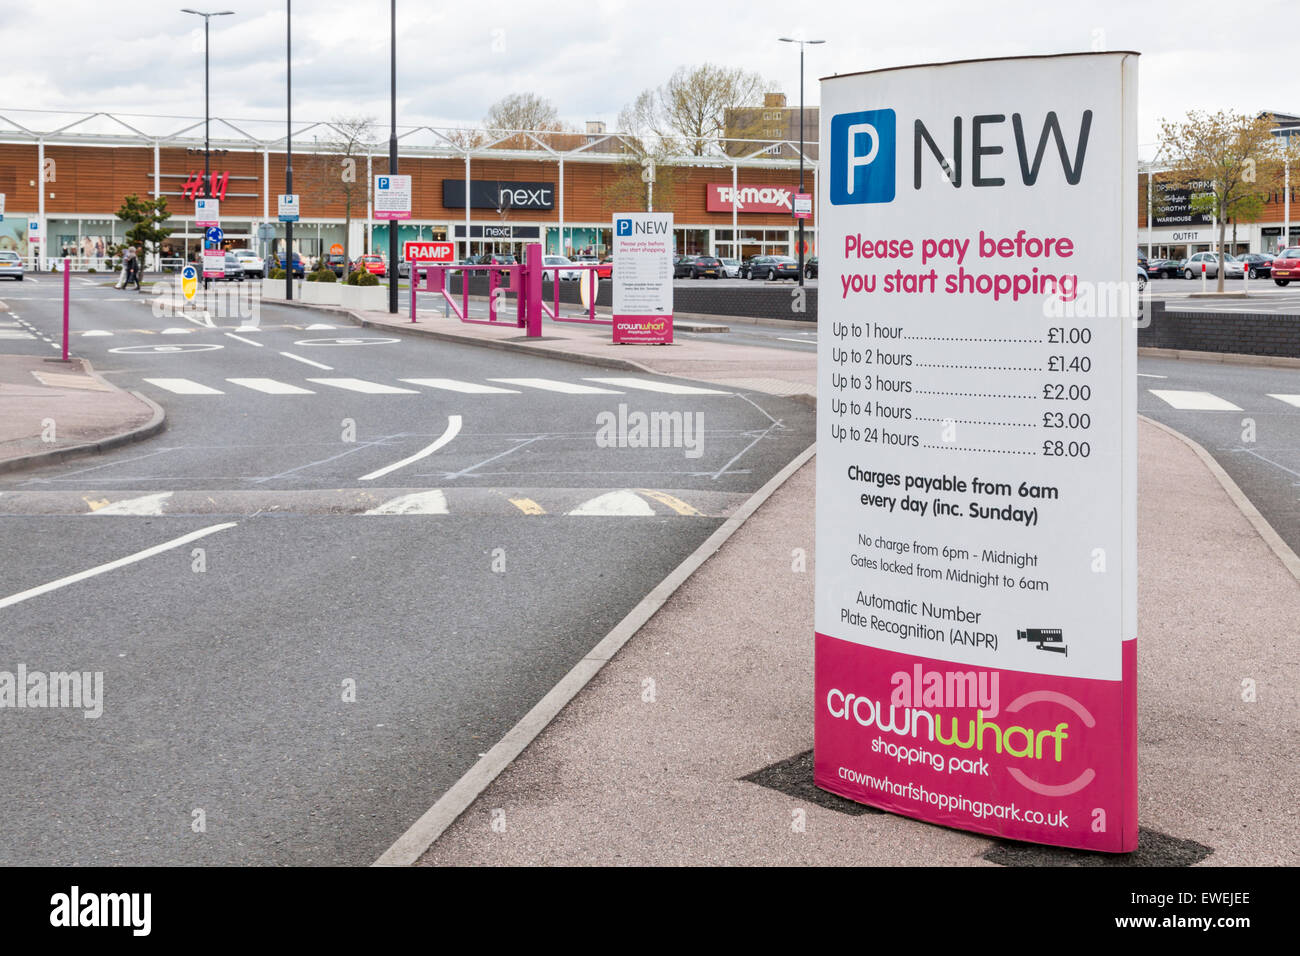 Parking charges sign at Crown Wharf Shopping Park, Walsall, West Midlands, England, UK - Stock Image